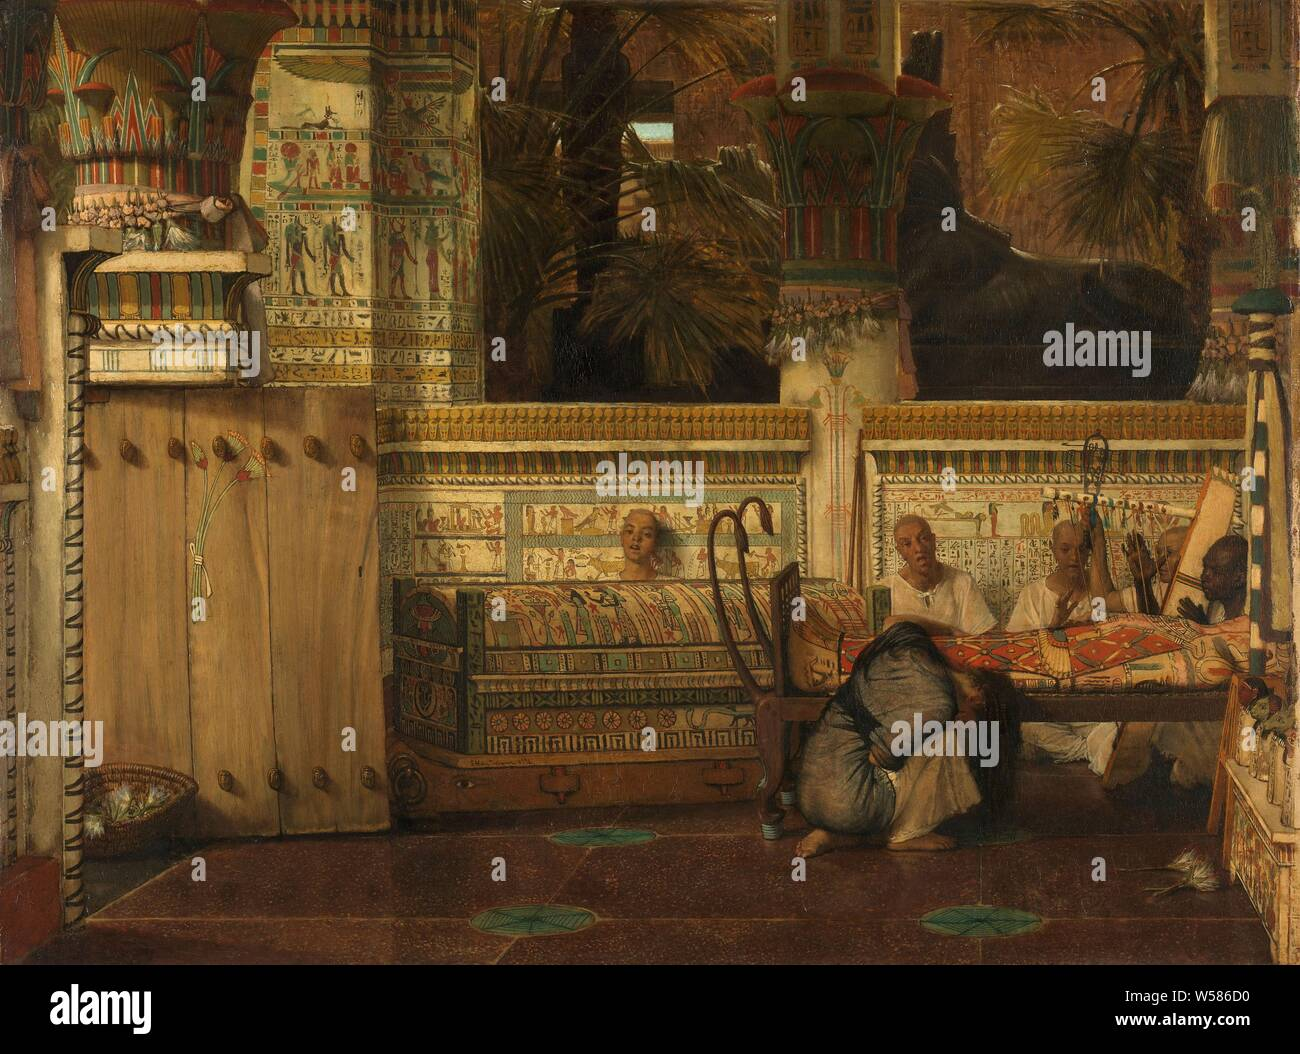 The Egyptian Widow, Interior of an Egyptian temple with a kneeling mourning widow. Priests sing and play harp by the body of the deceased, mourning the dead, widow, Lourens Alma Tadema, 1872, panel, oil paint (paint), h 74.9 cm × w 99.1 cm Stock Photo